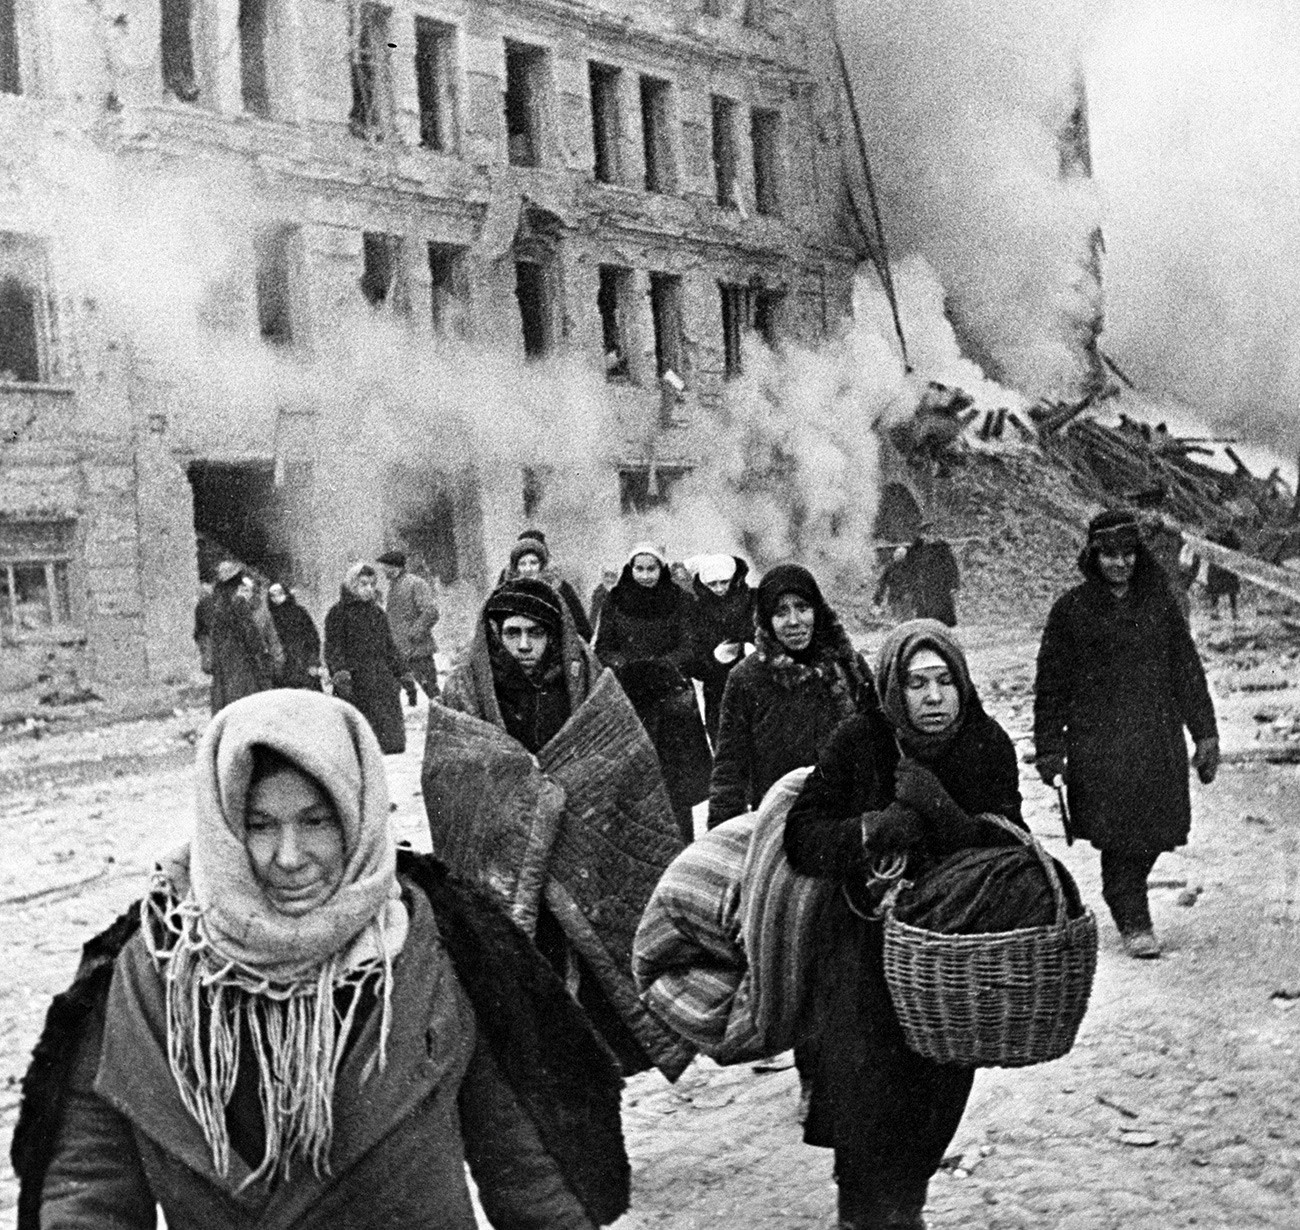 Citizens of Leningrad during the siege of the city (1941 - 1943)